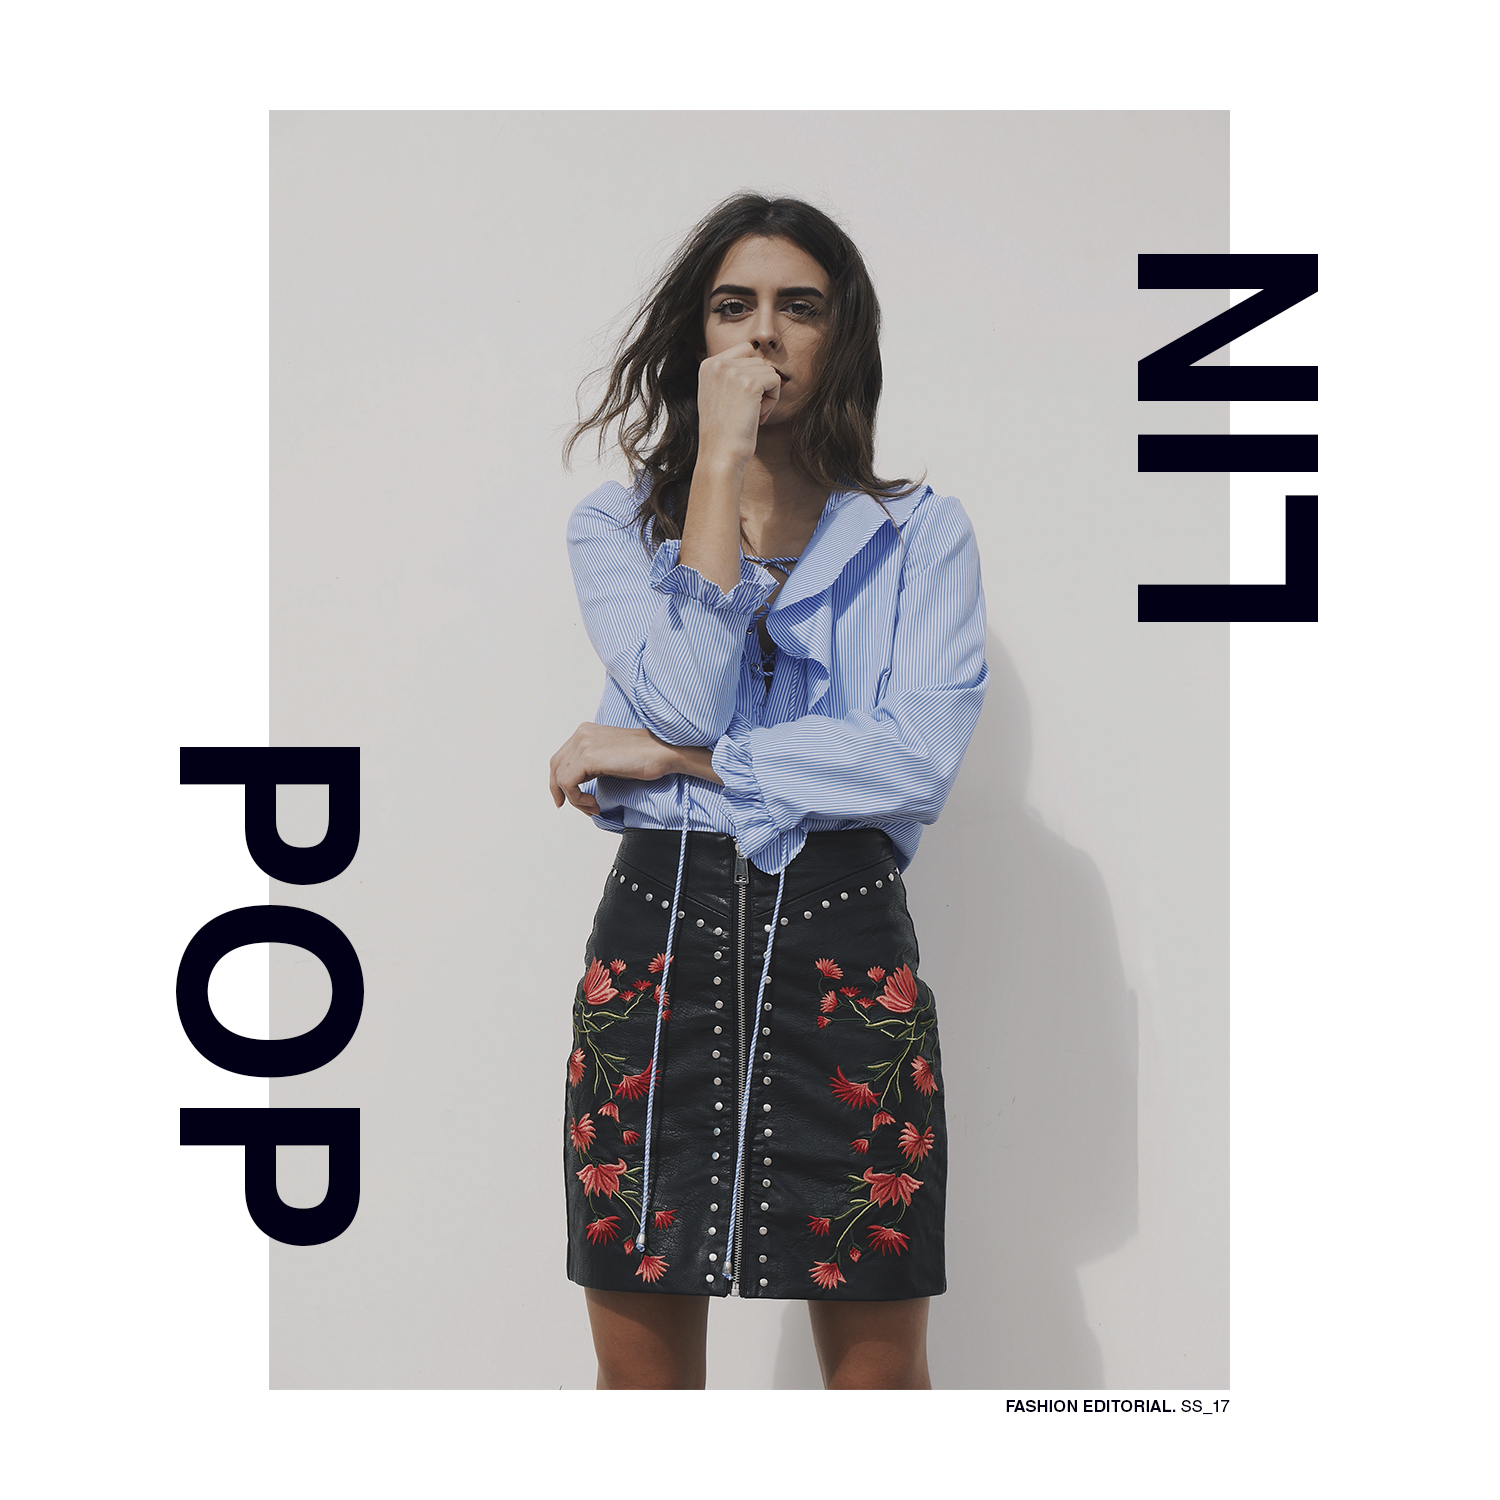 poplin_laceup_shirt_leather_skirt_embroidery_stud_jupeencuir_chemisearayure_ss17_outfit_tenue_blog_ootd_coastalandco_hendaye